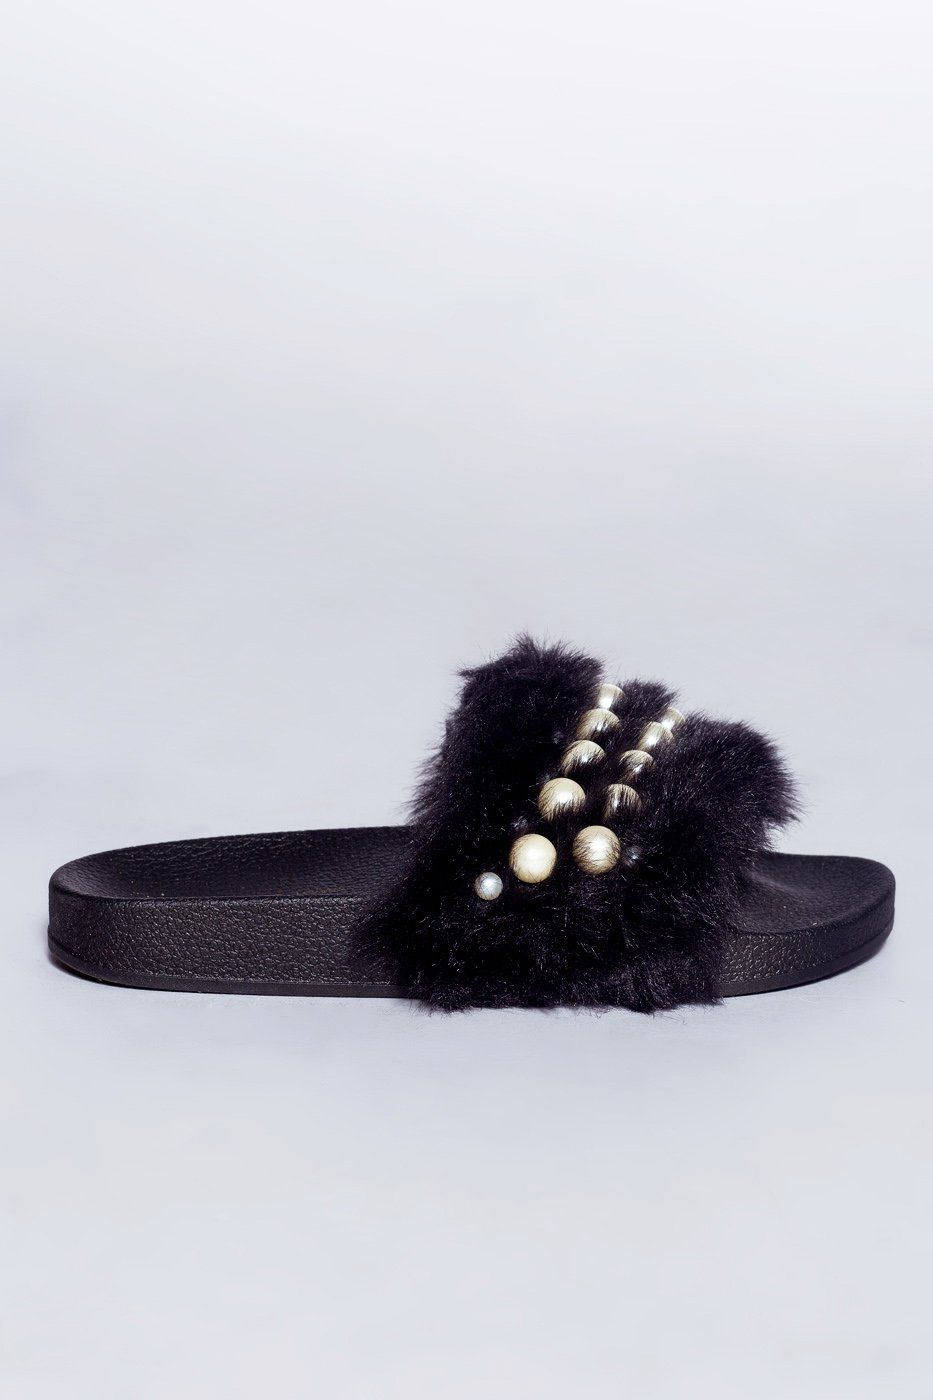 6a50605e667bdc Chanell Fur Slides - Black